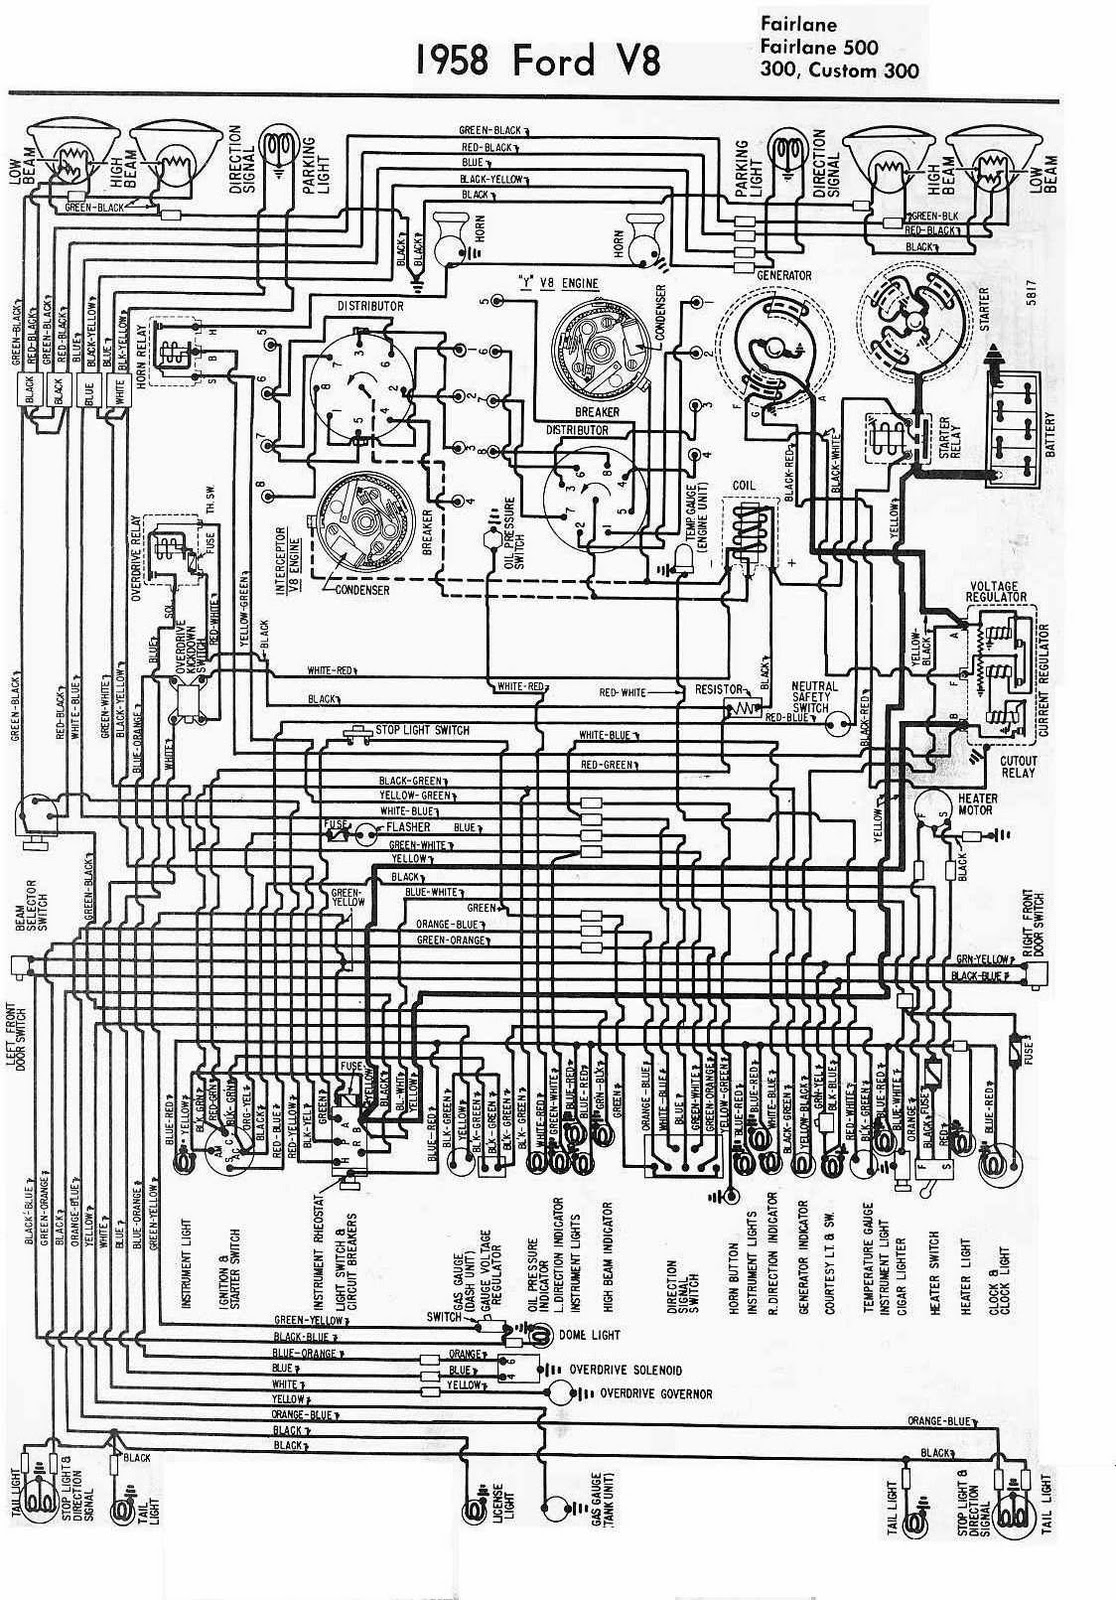 Electrical Wiring Diagram For Ford V on 1957 Thunderbird Wiring Diagram